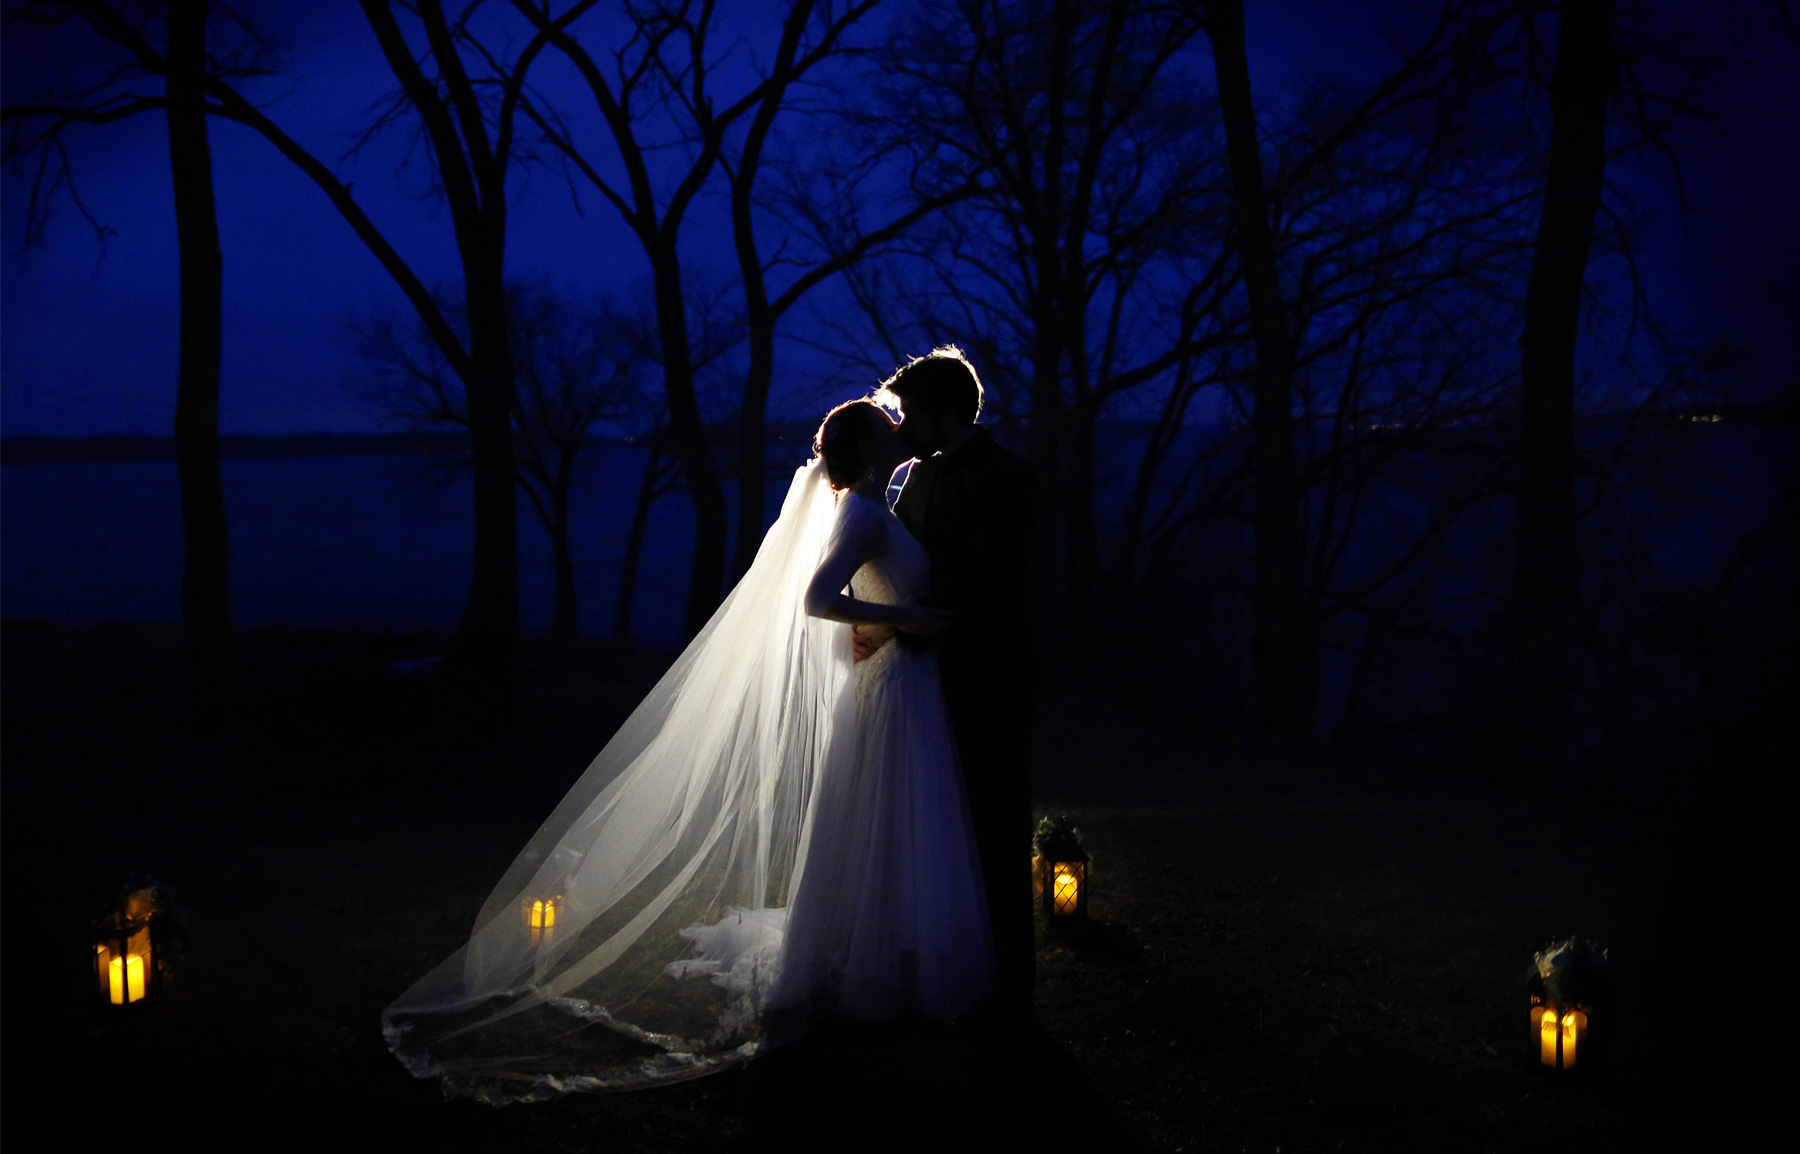 18-Minneapolis-Minnesota-Wedding-Photography-by-Vick-Photography--Chanhassen-Night-Photography-Winter-Lanterns-Dark-Trees-Ashley-and-Aaron.jpg